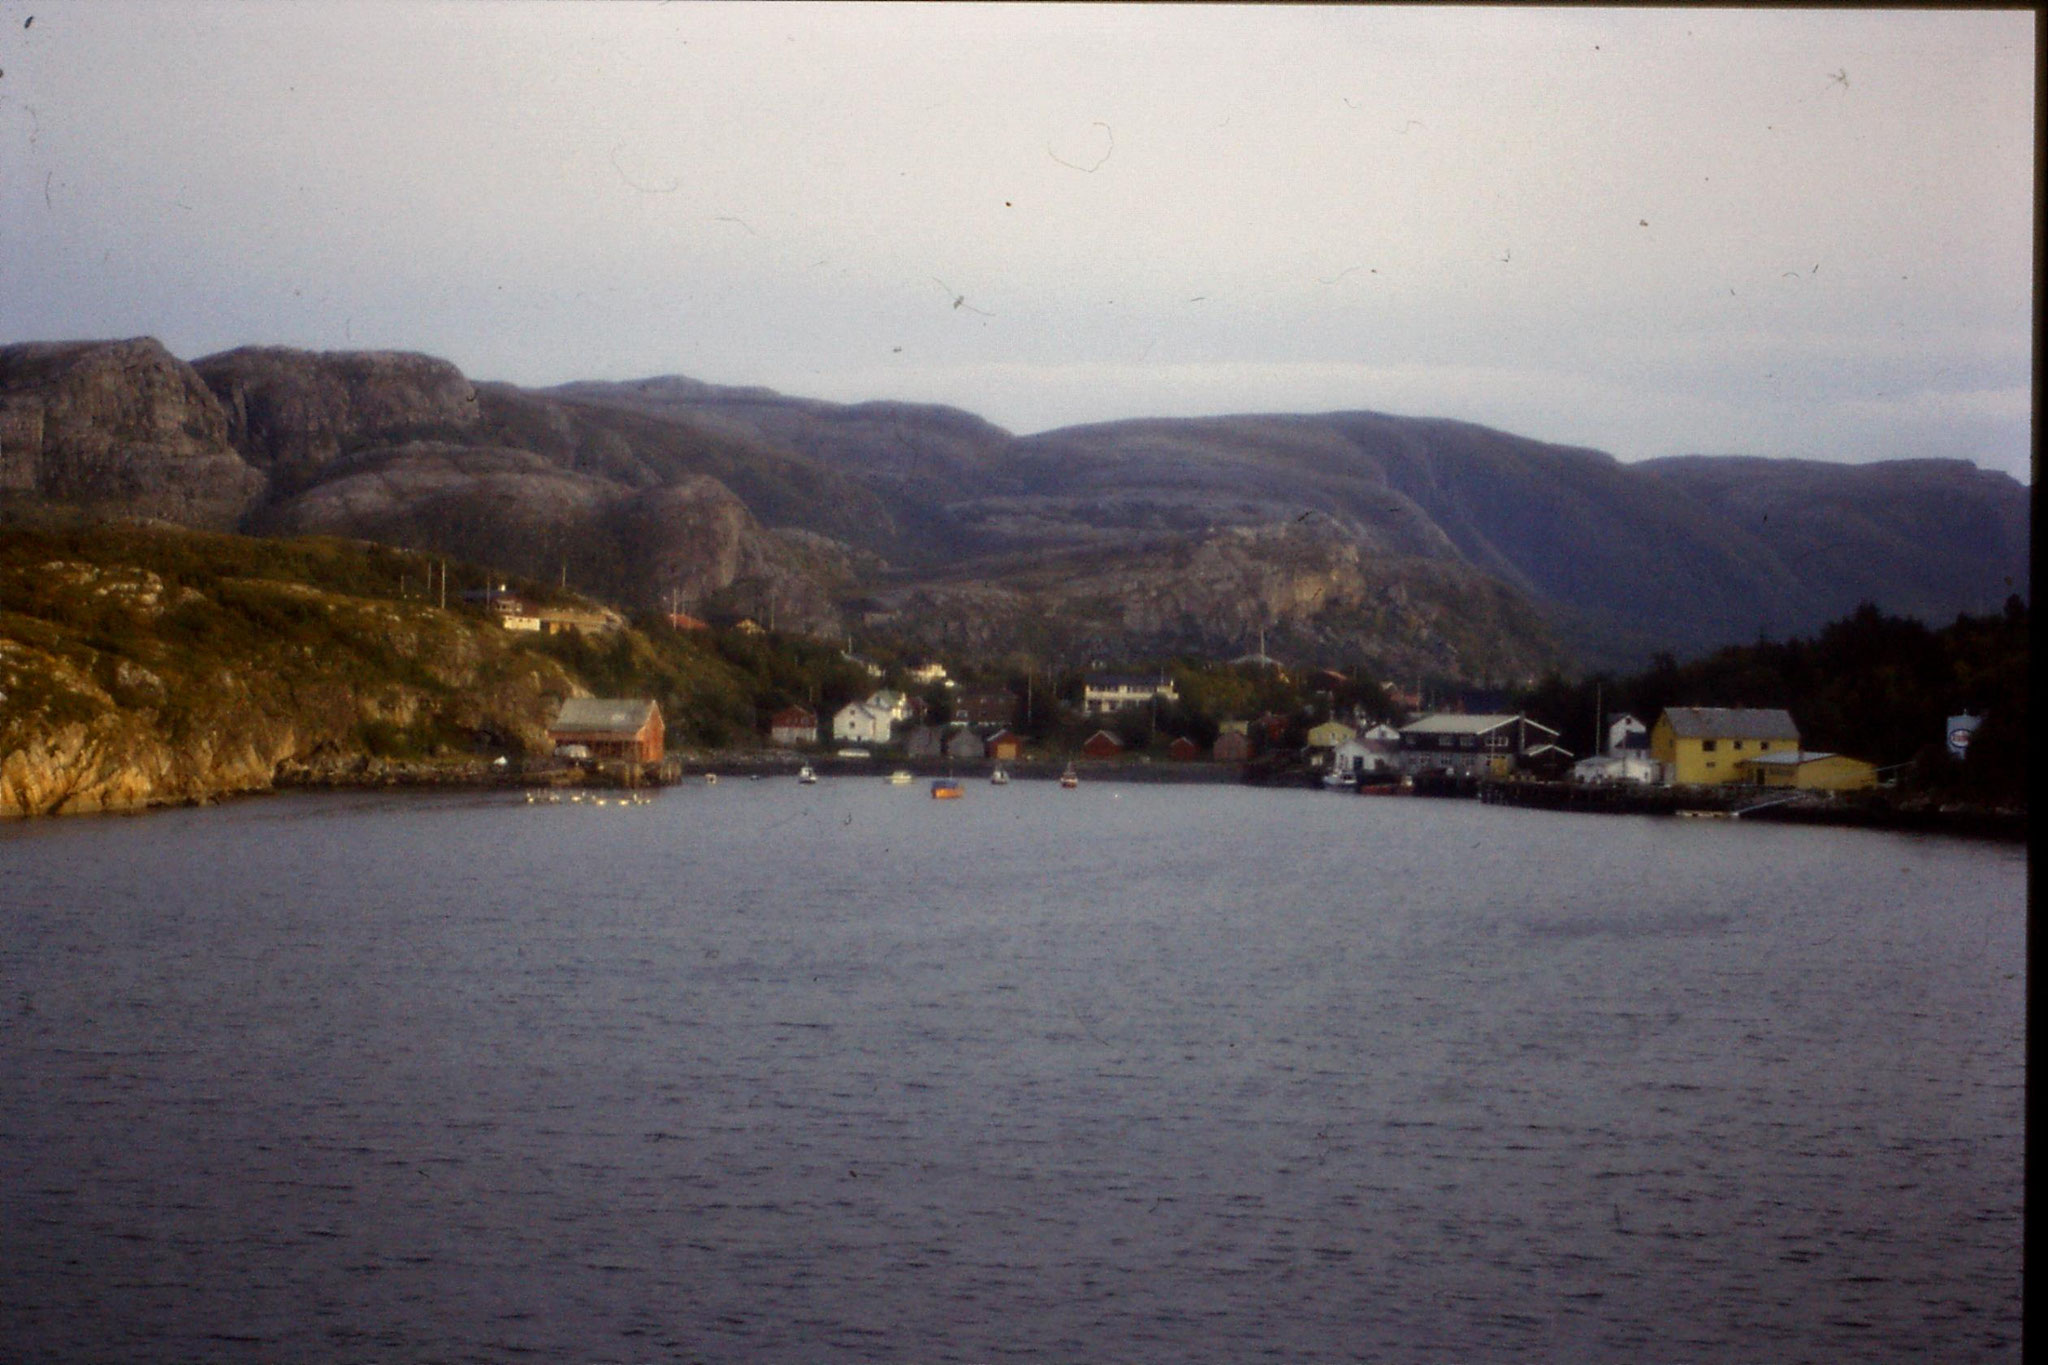 23/9/1988: 19: north of Stoksund